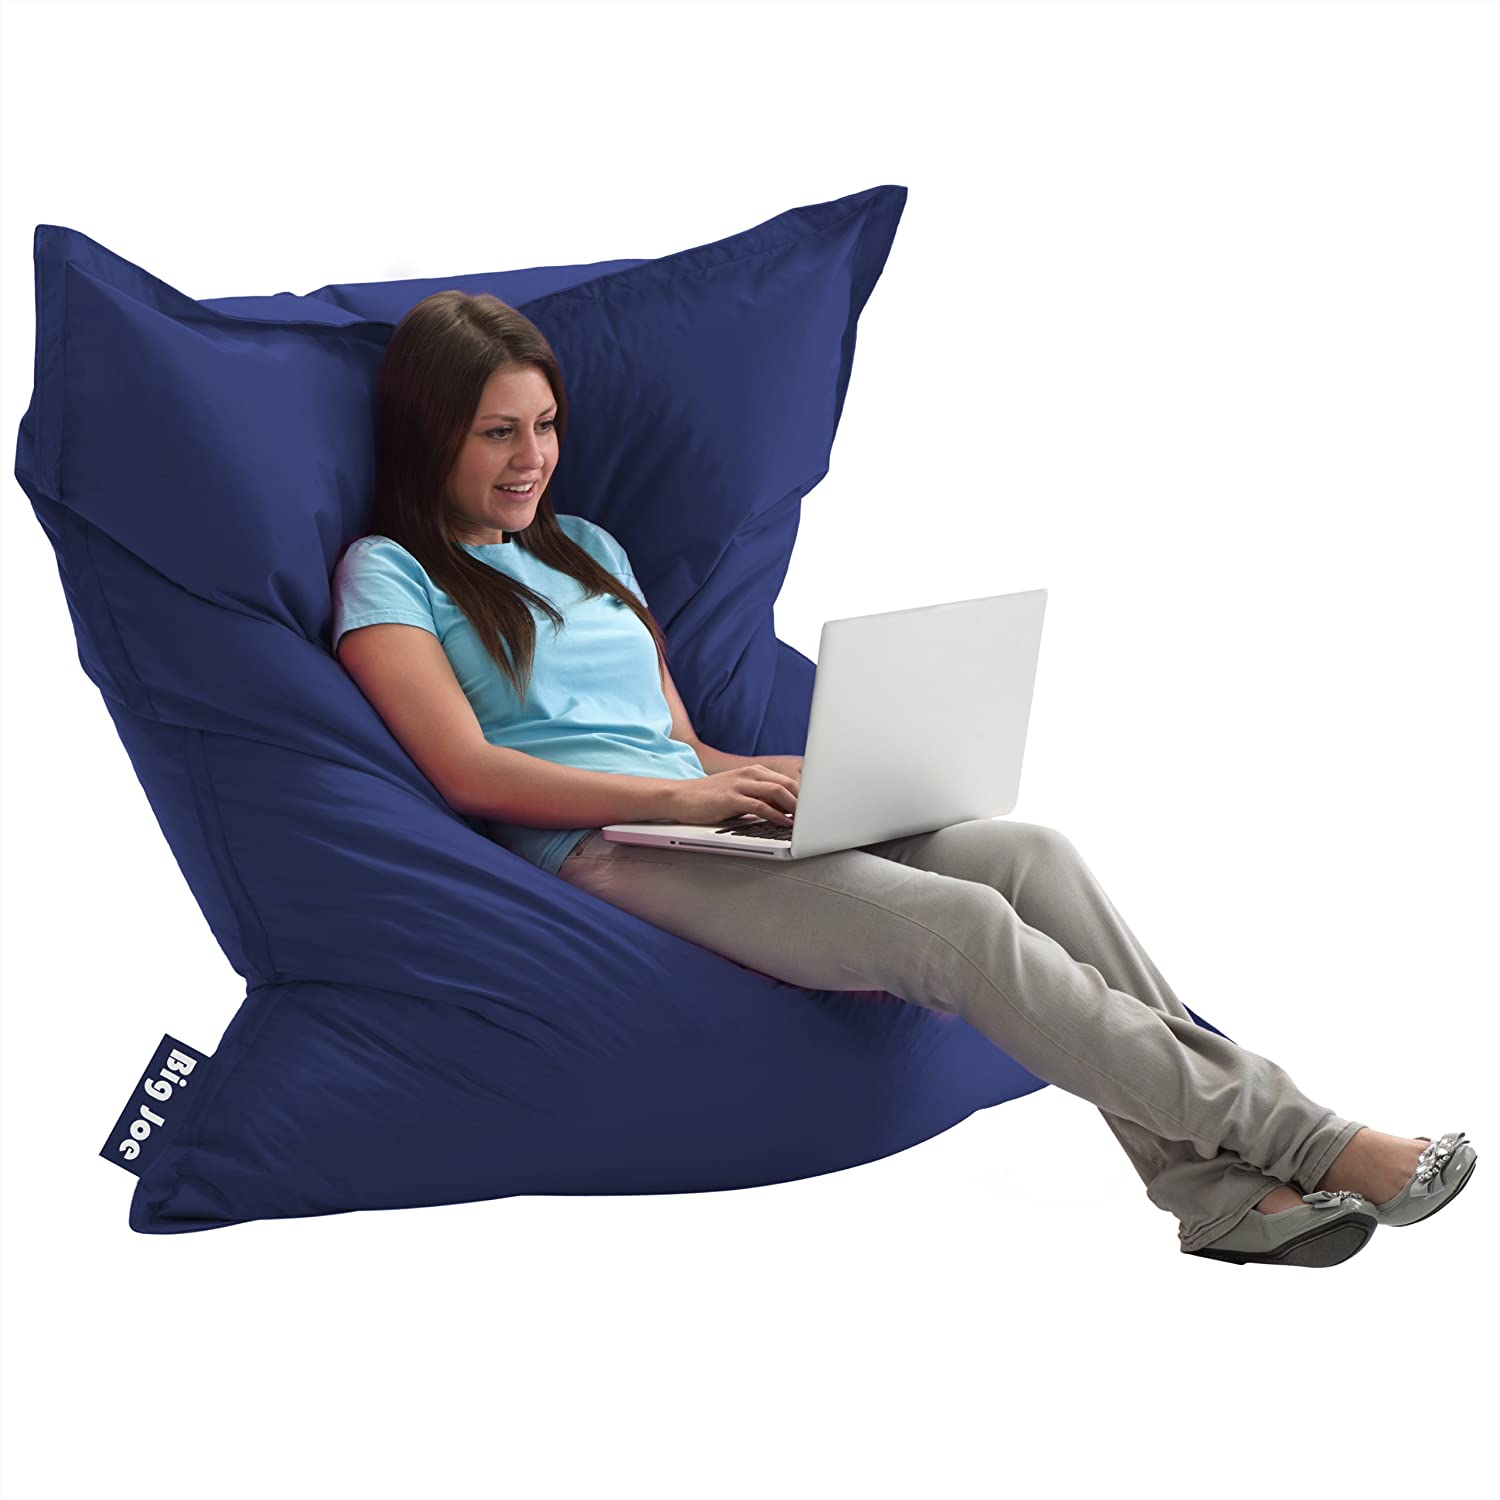 Best Bean Bag Chairs Top Reviews A Great Pick - Cozy chill bag